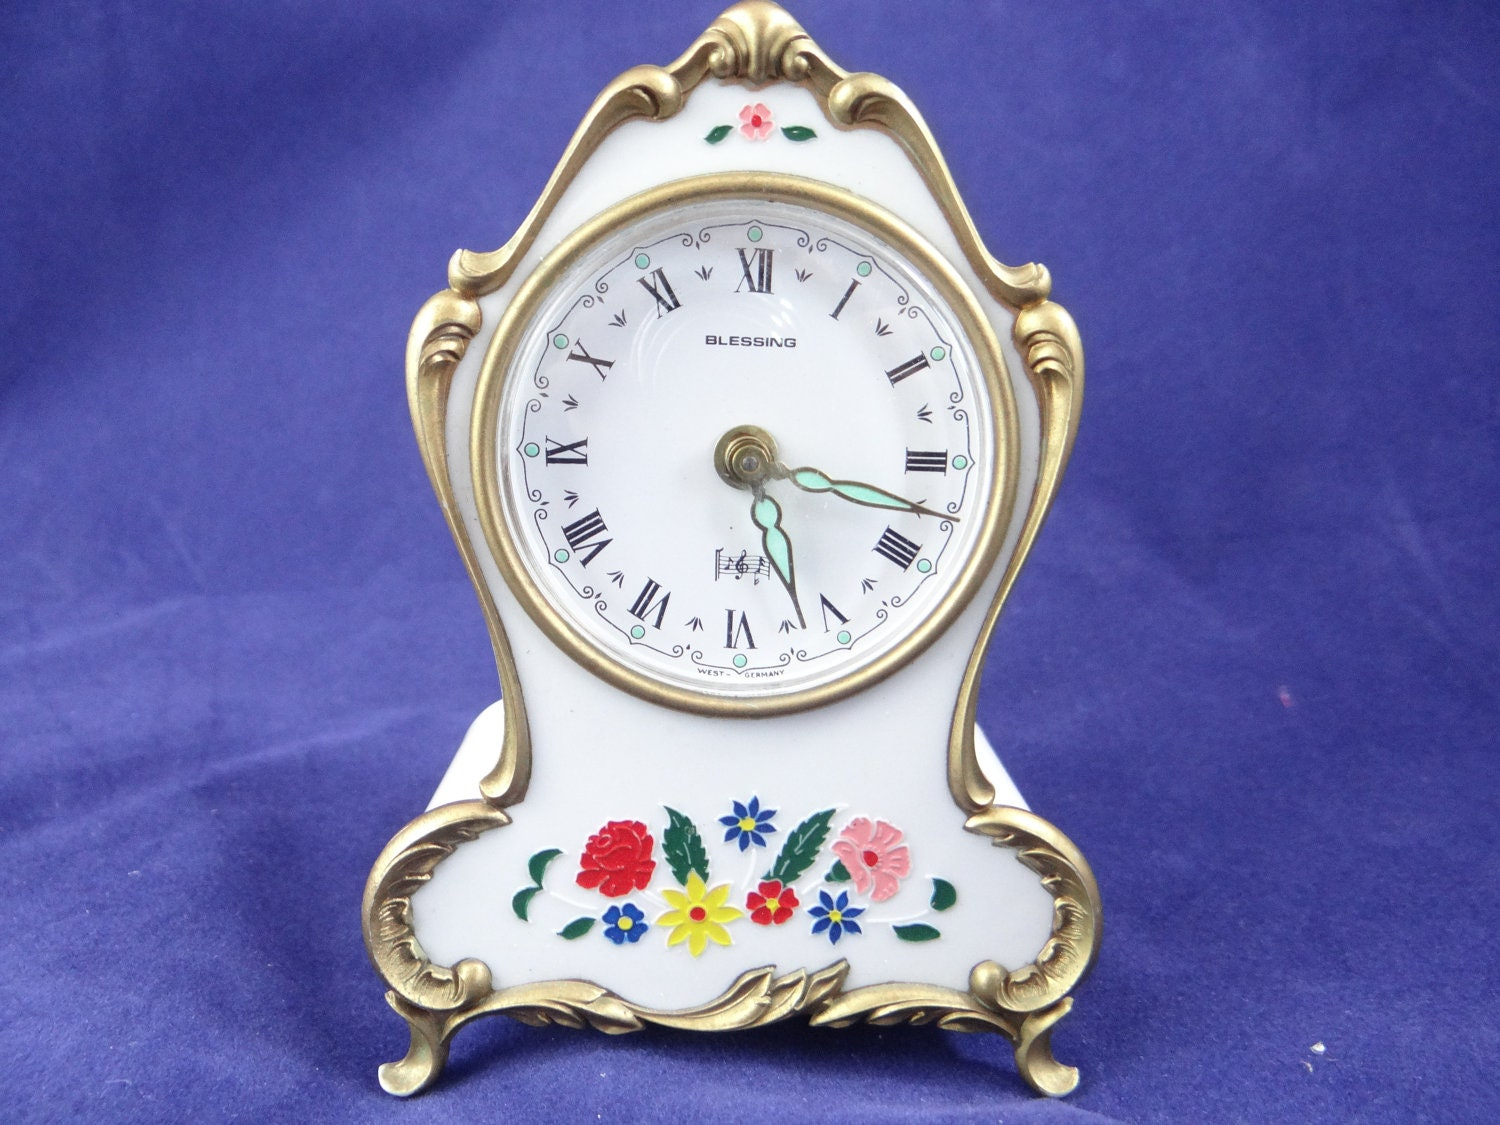 Vintage West Germany Blessing Travel Alarm Clock By